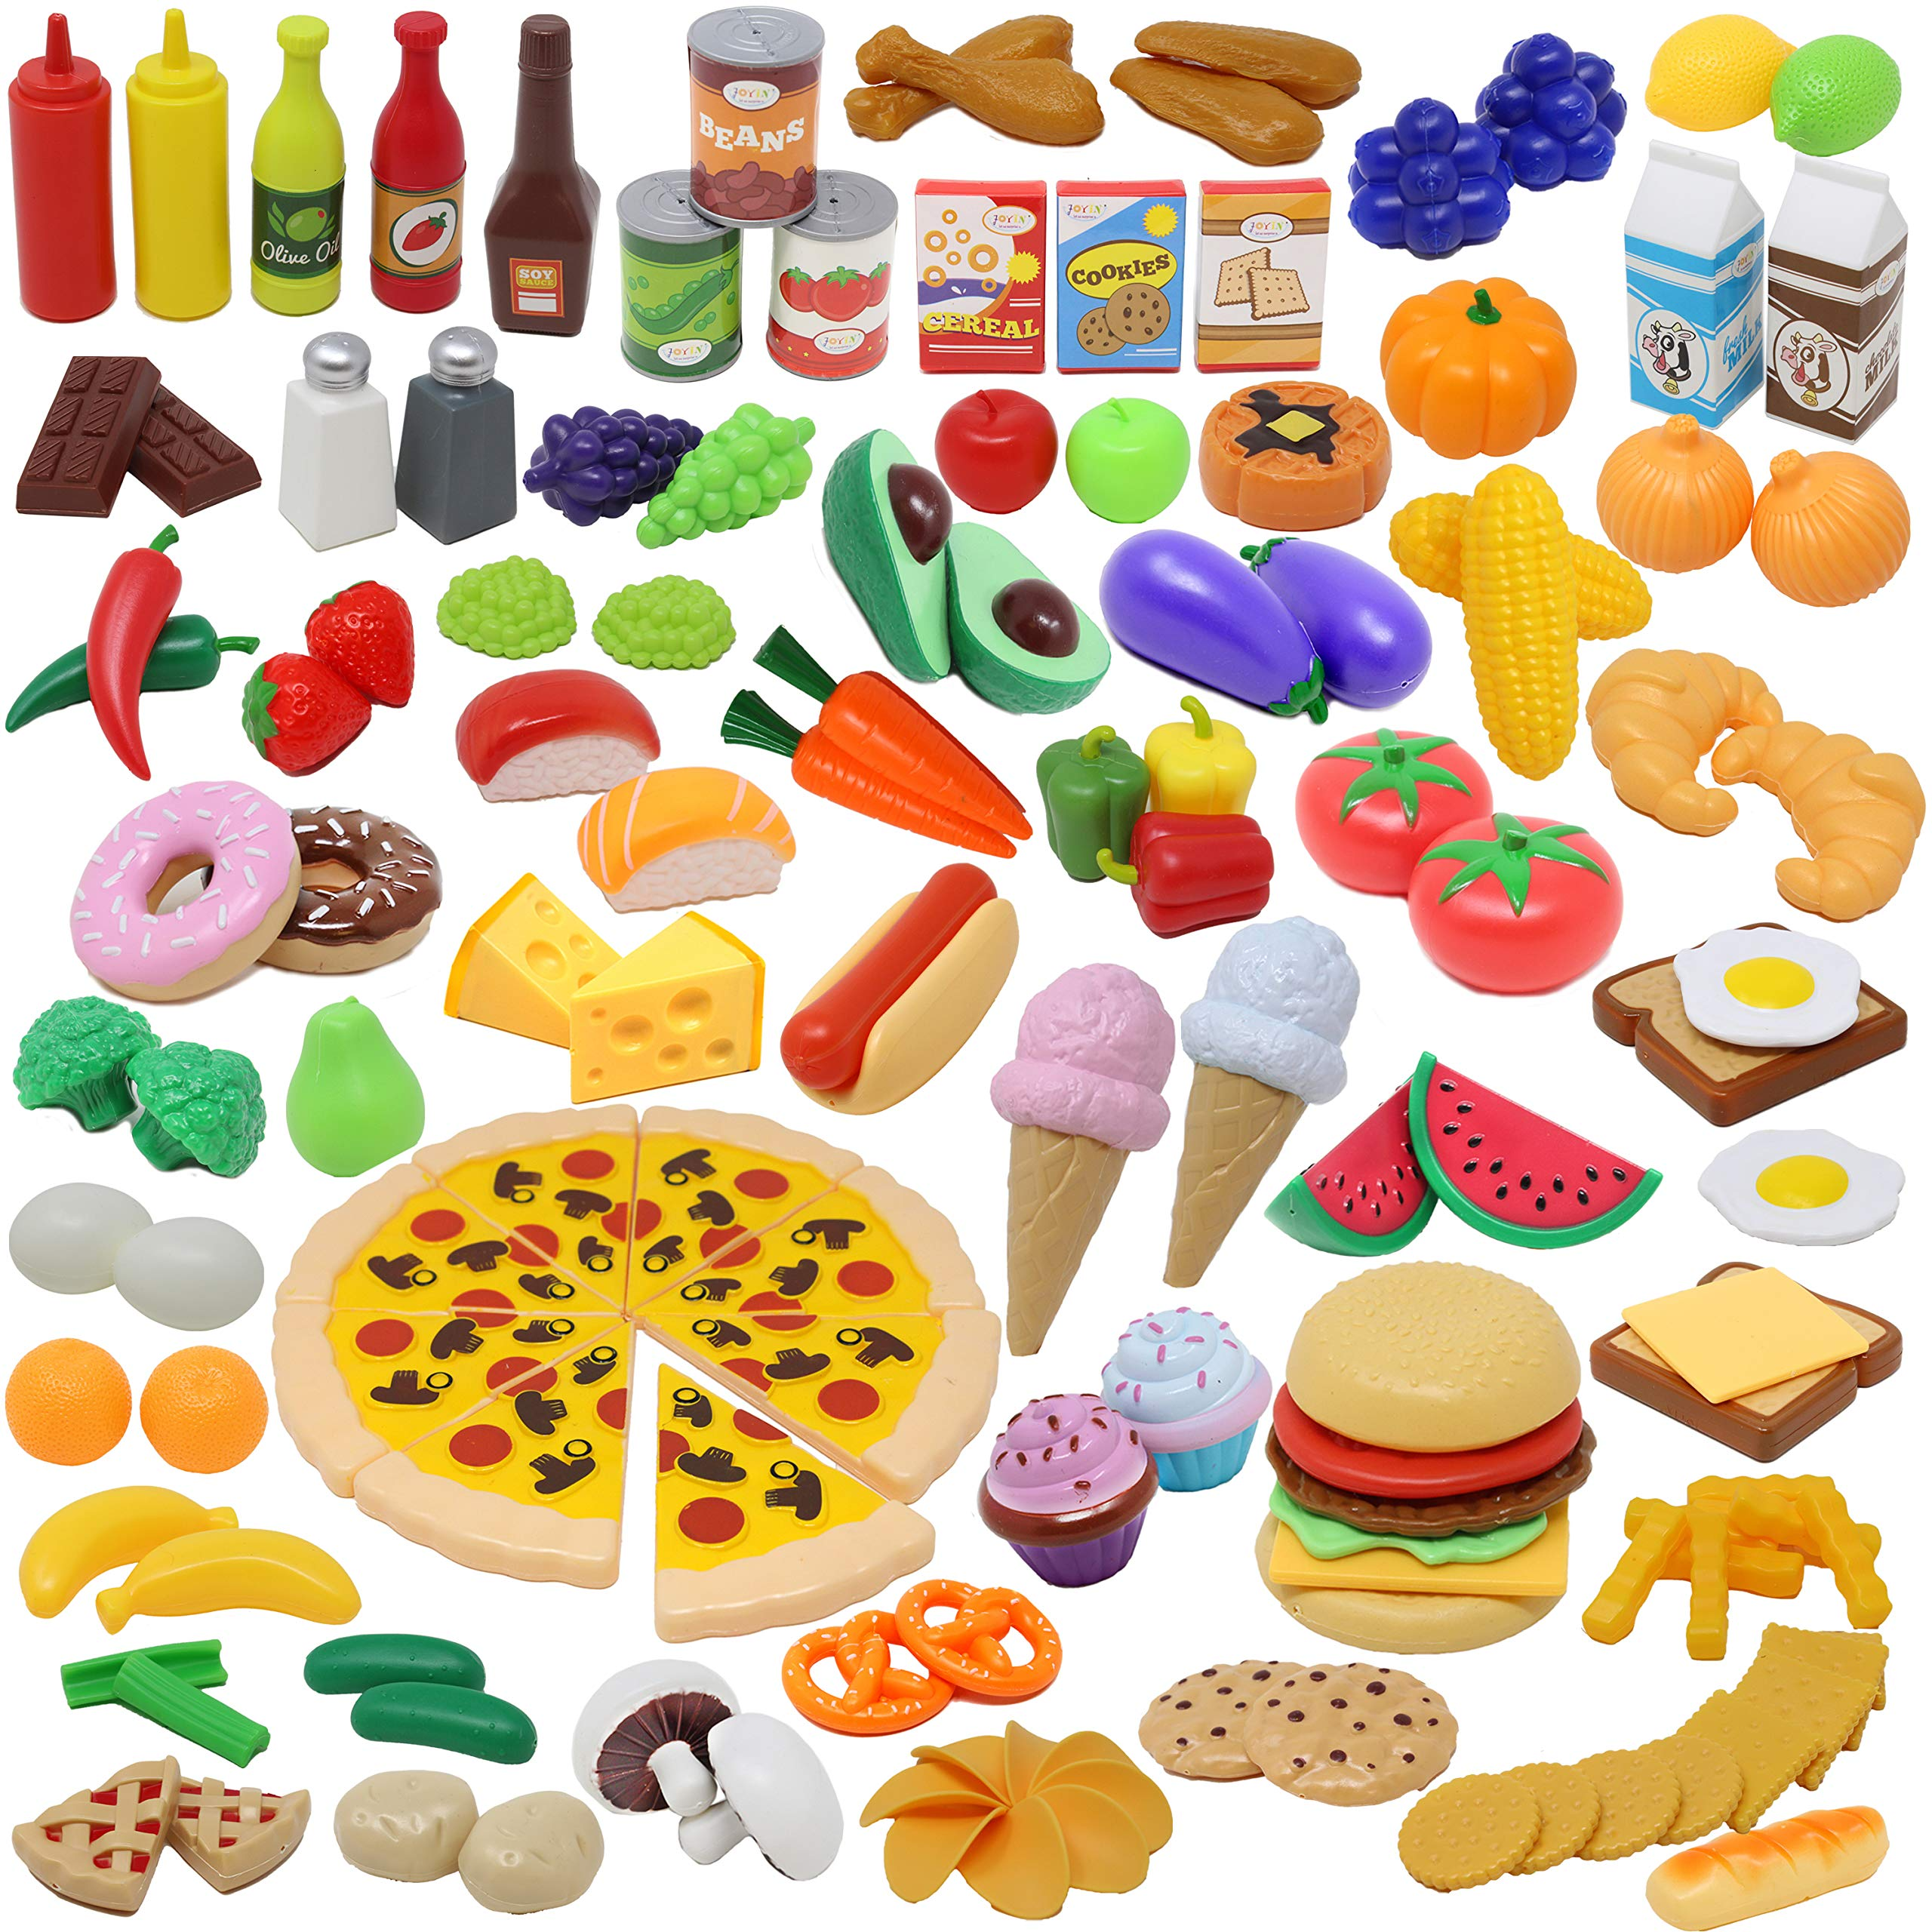 JOYIN Play Food Set 135 Pieces Play Kitchen Set for Market Educational Pretend Play, Food Playset, Kids Toddlers Toys, Kitchen Accessories Fake Food, Party Favor Supplies, Holiday